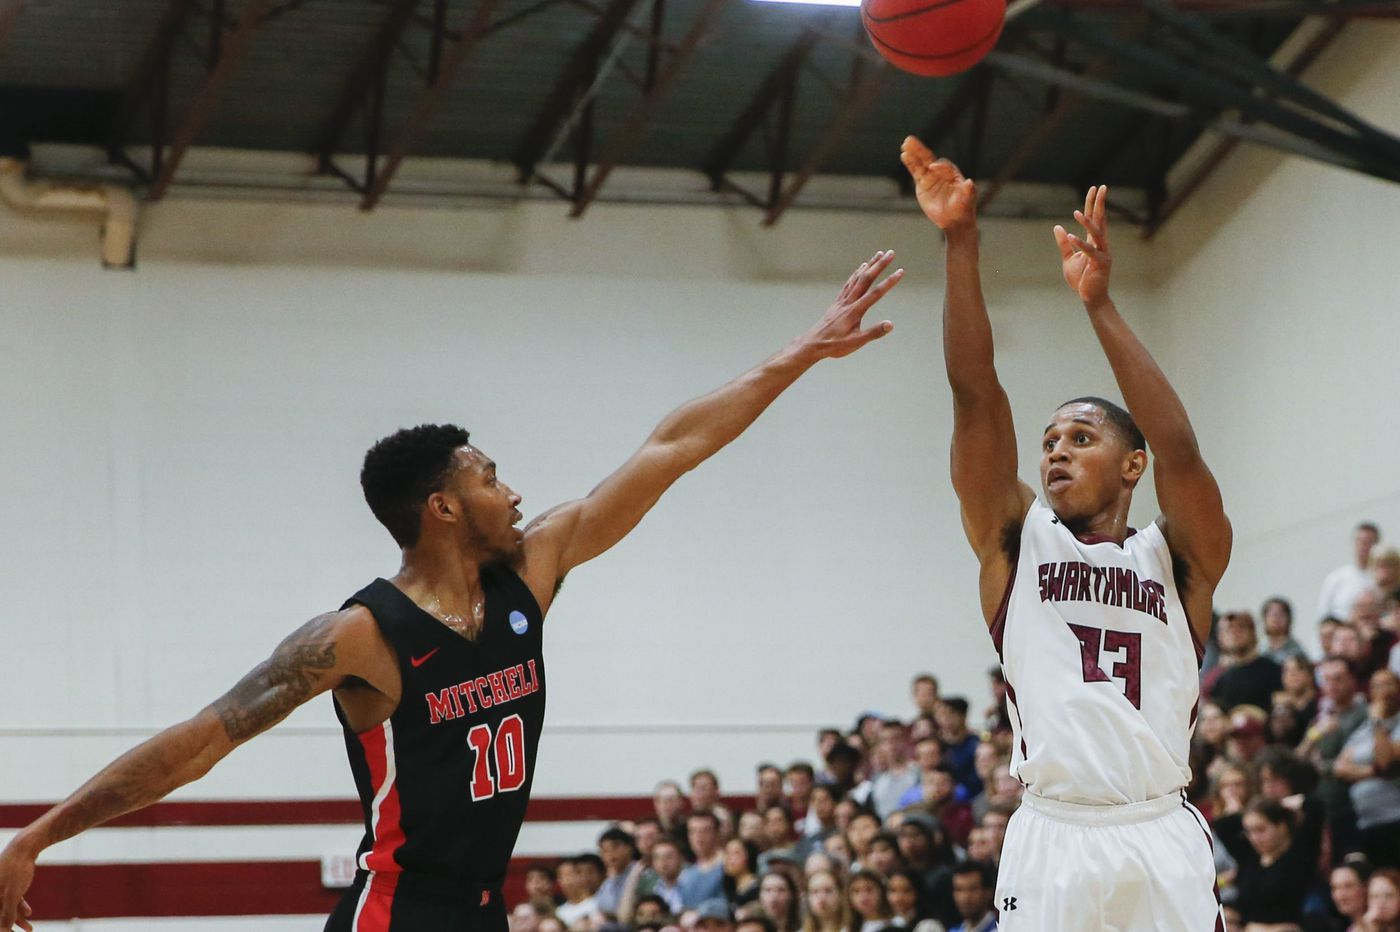 Swarthmore men roll to Saturday's Division III national title game